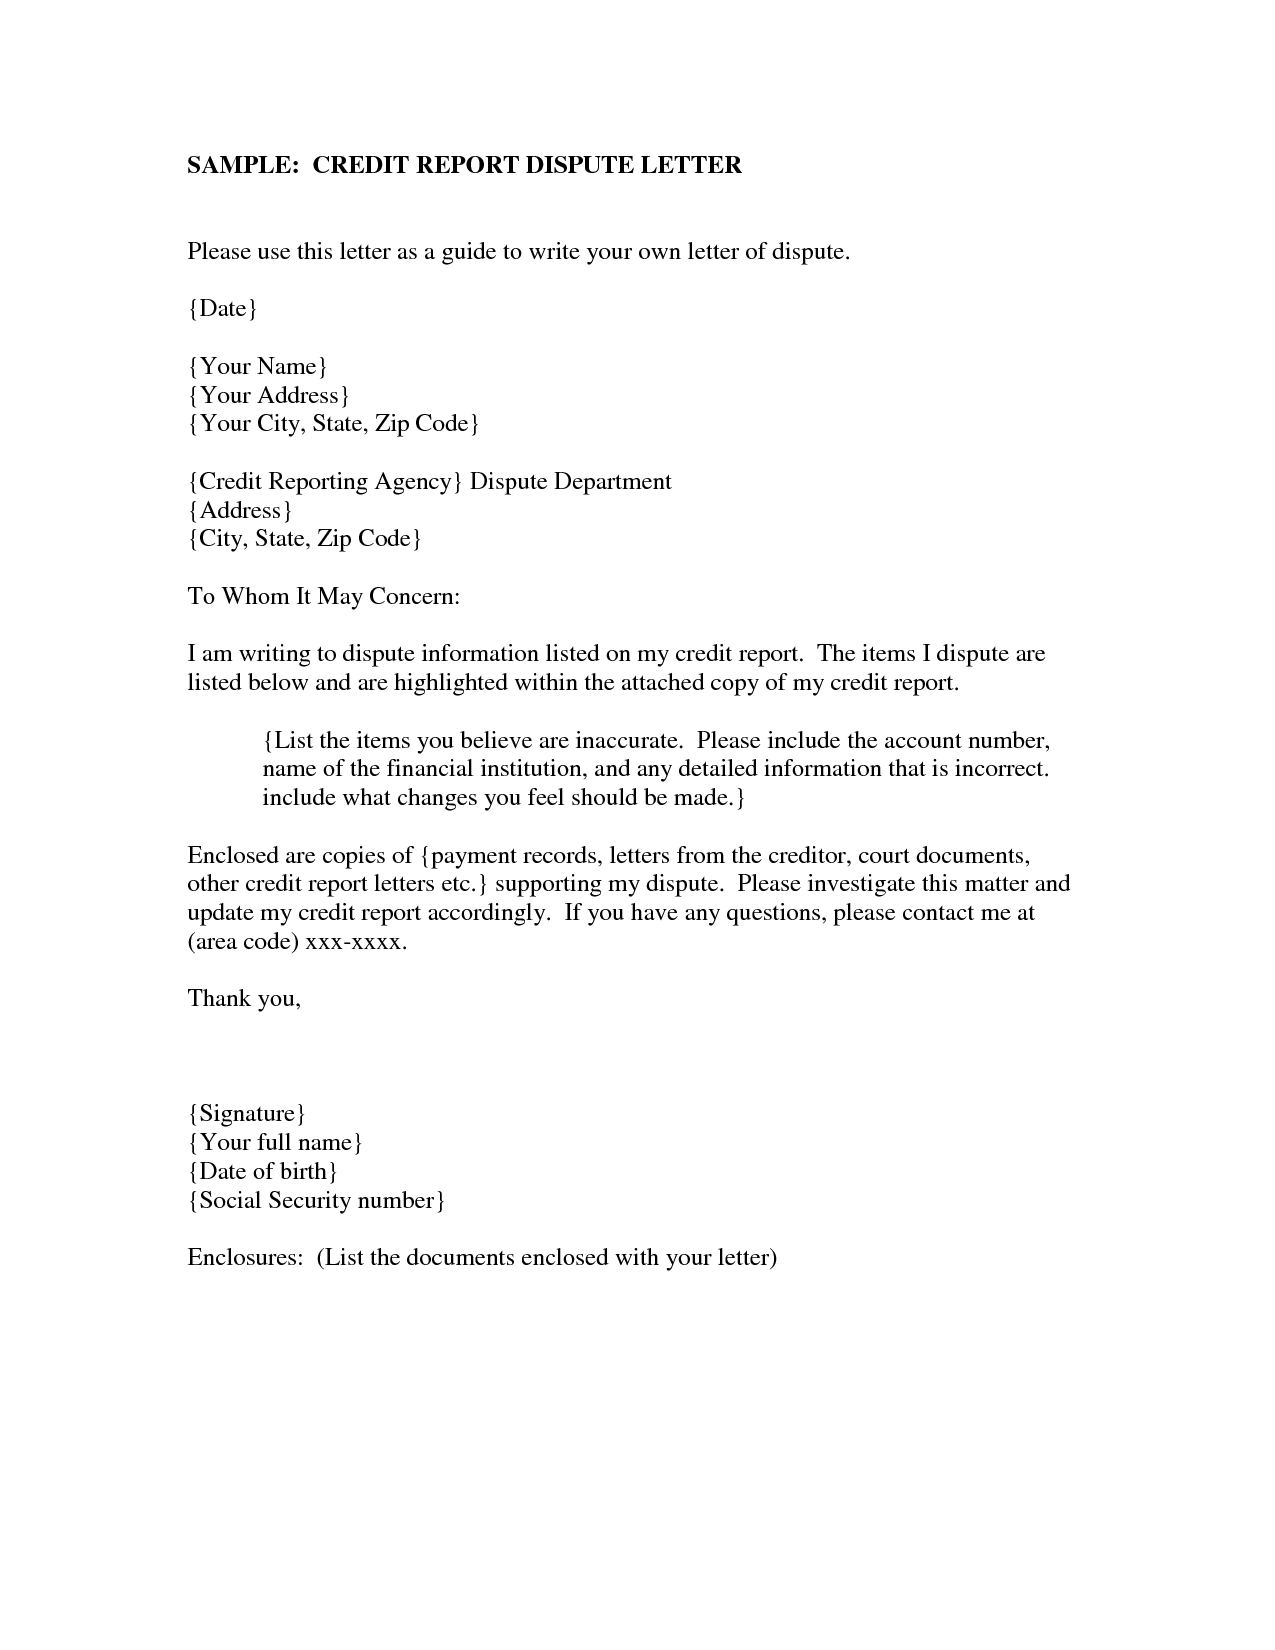 609 Dispute Letter to Credit Bureau Template - How to Write Credit Dispute Letter Image Collections Letter format